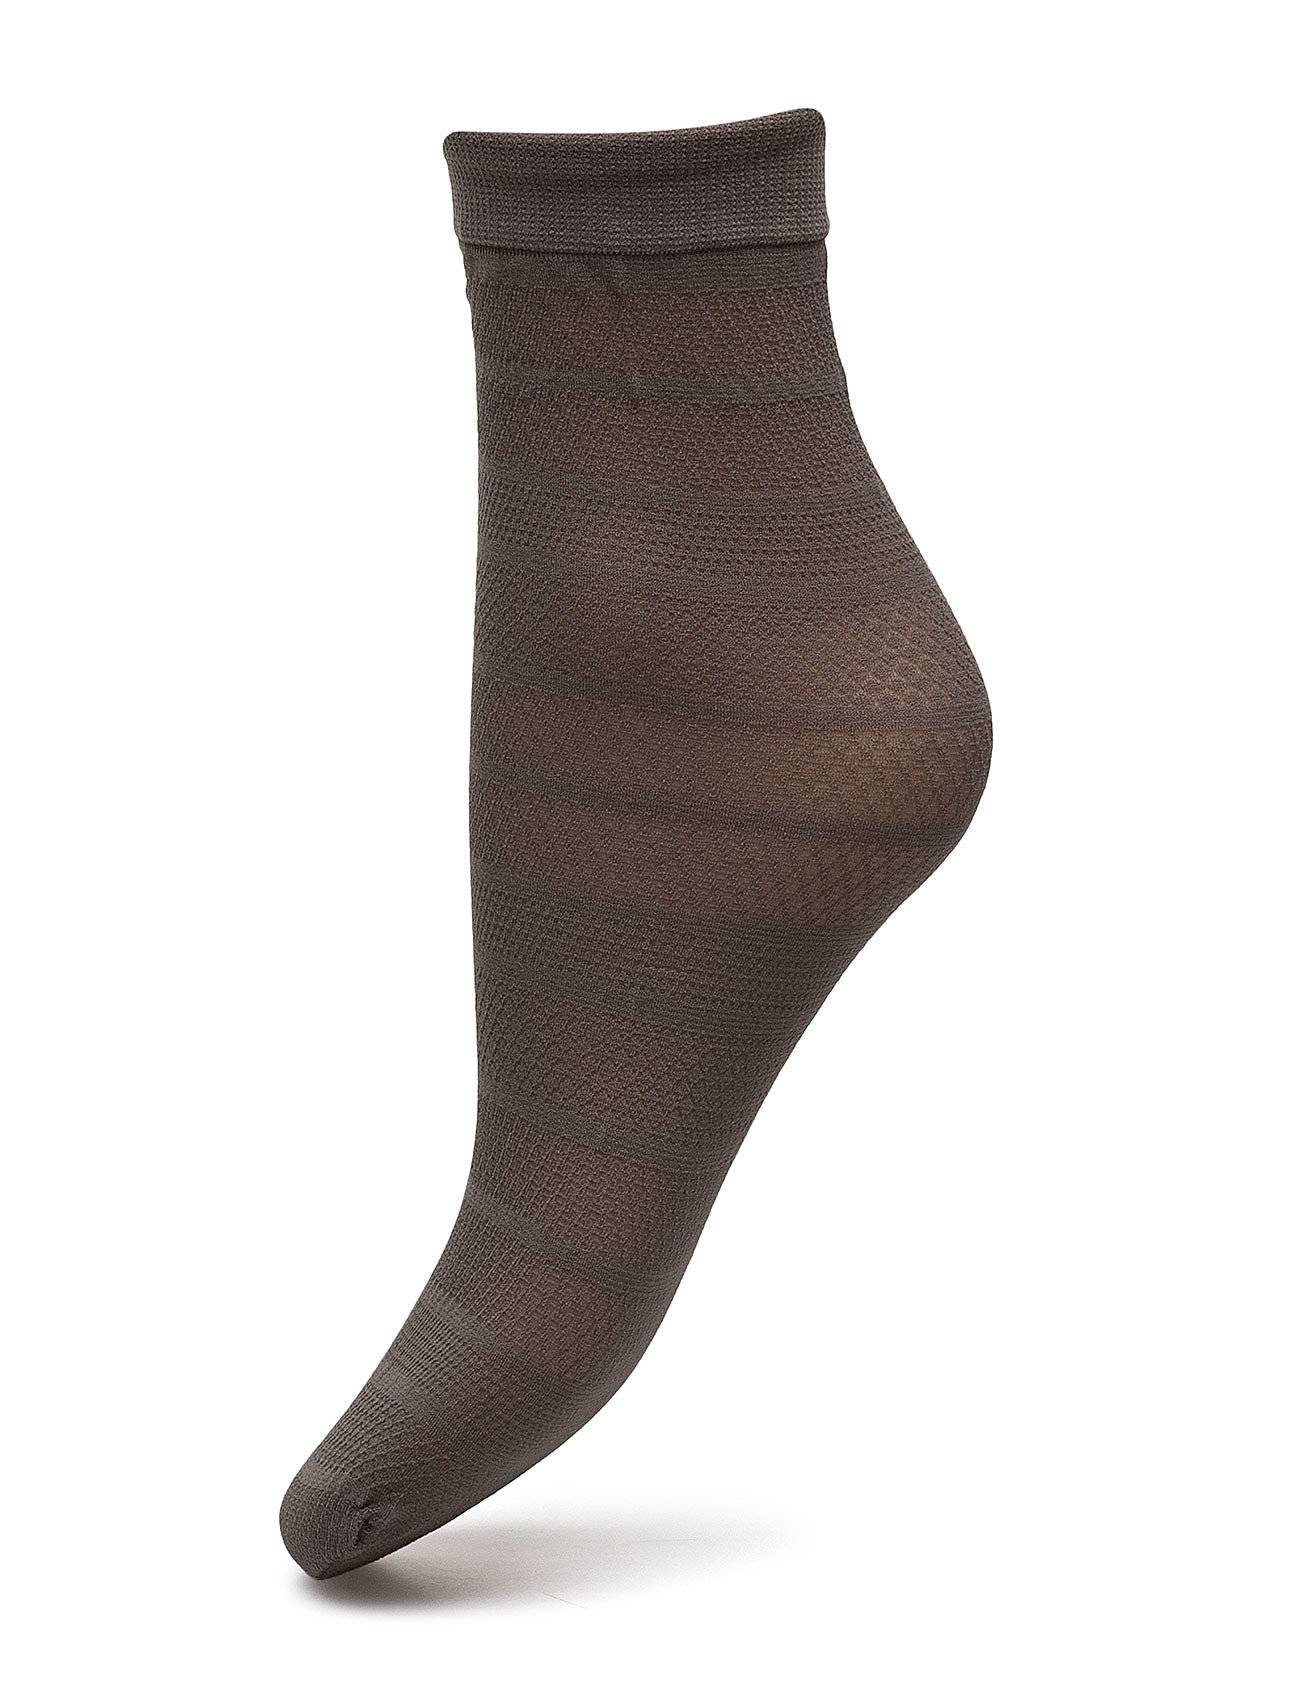 Vogue Ladies Den Anklesock, Lacework Sock 50